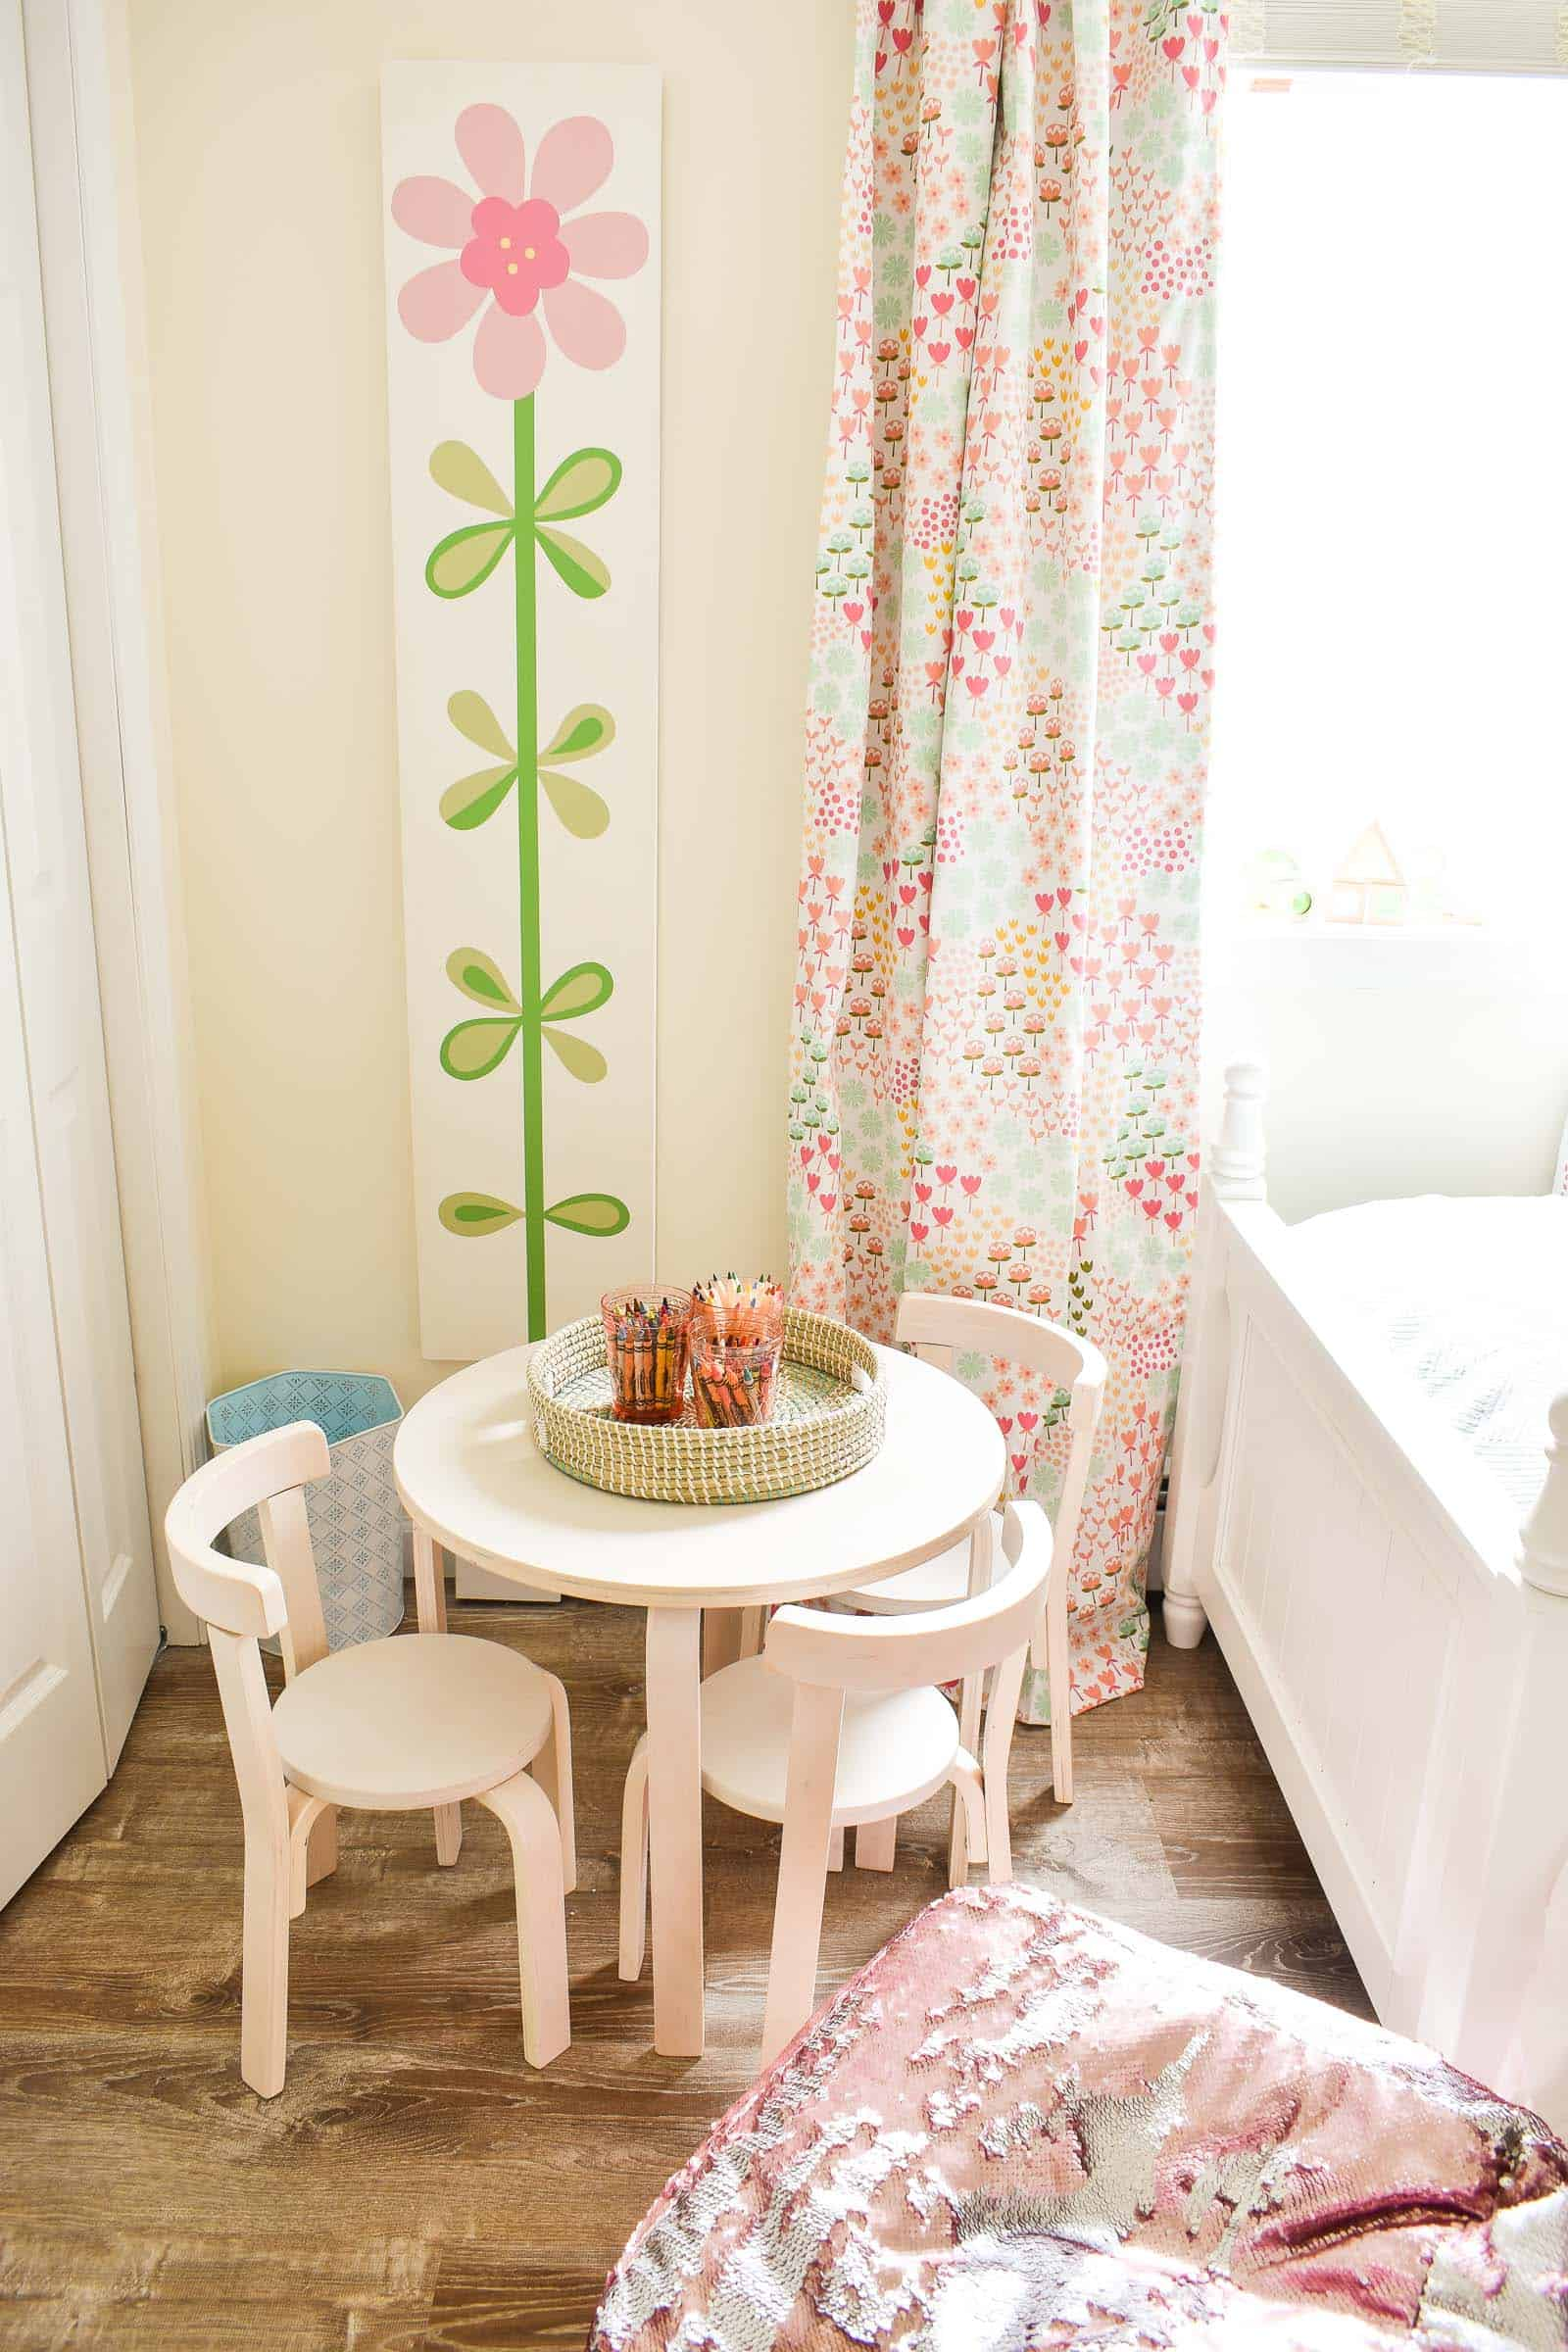 play table for little girls room